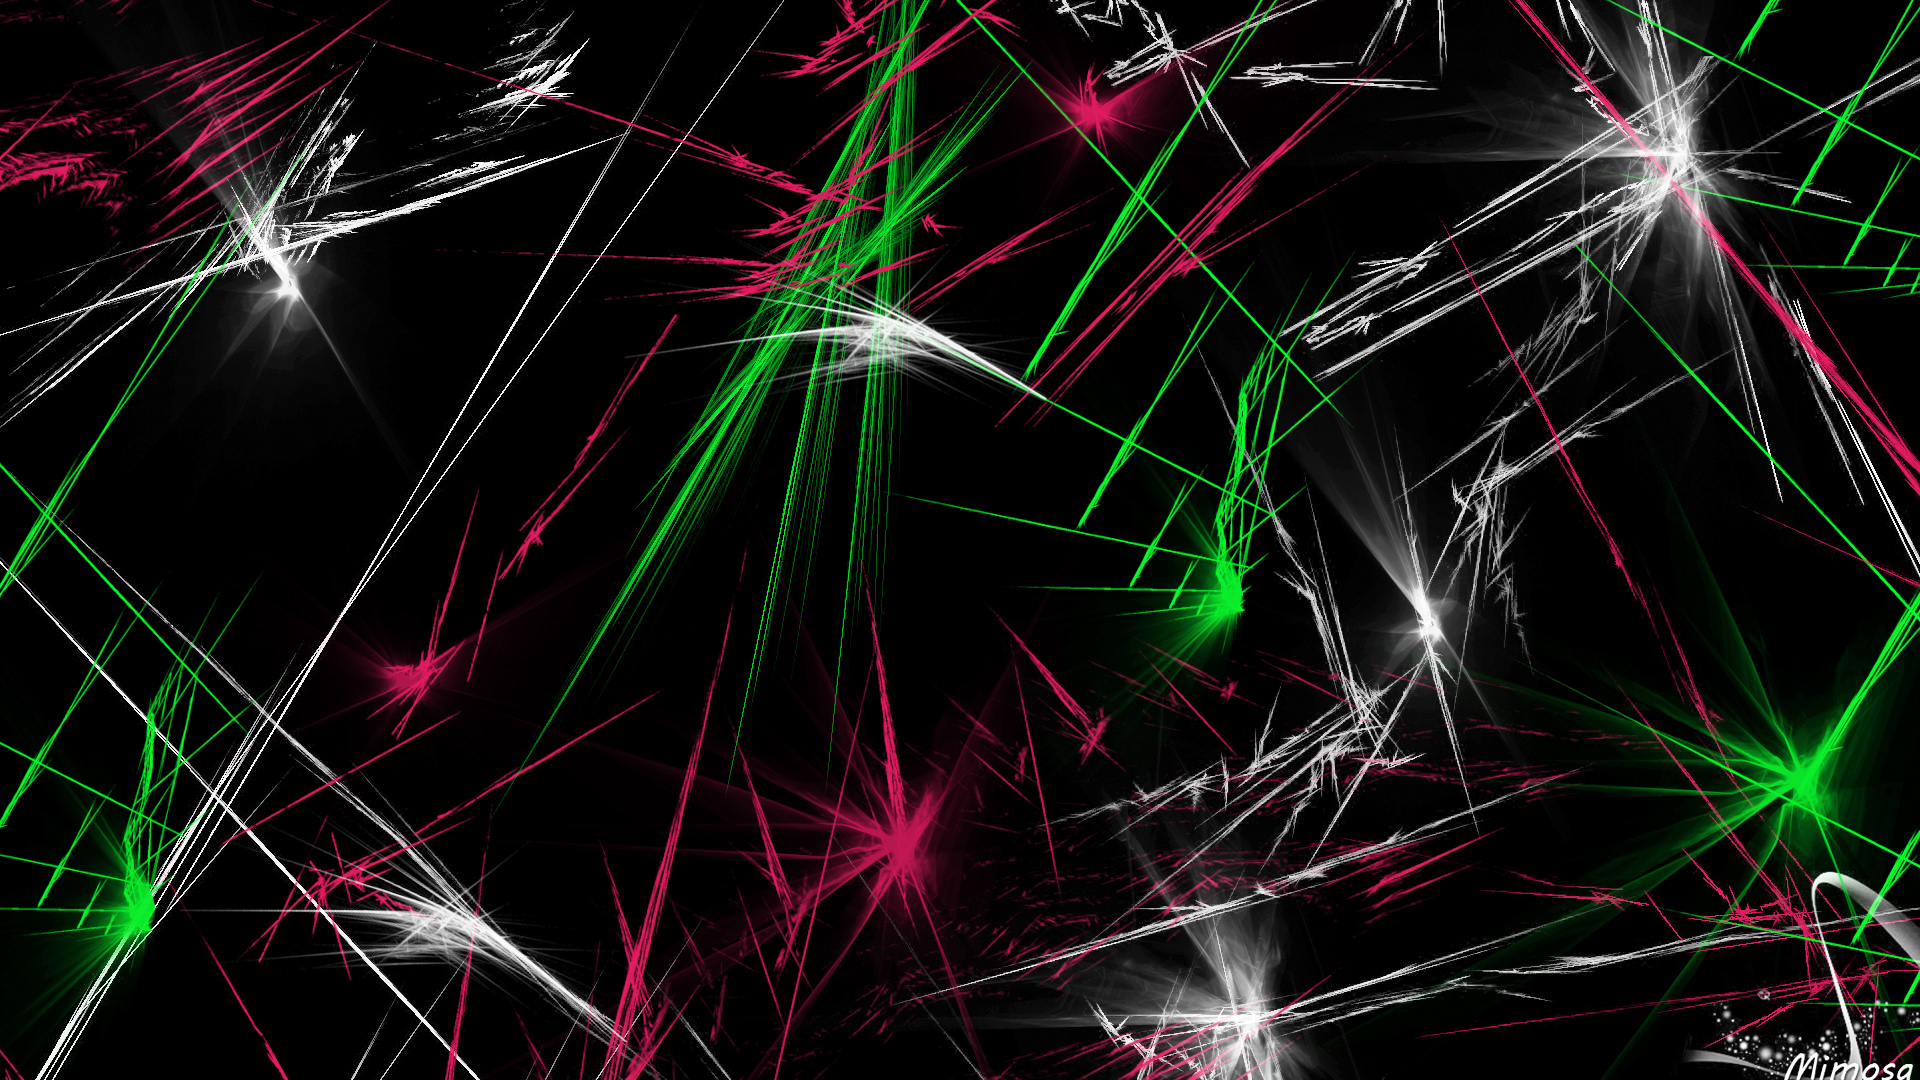 Wallpaper Of Abstract Black Colorful Digital Art Lines